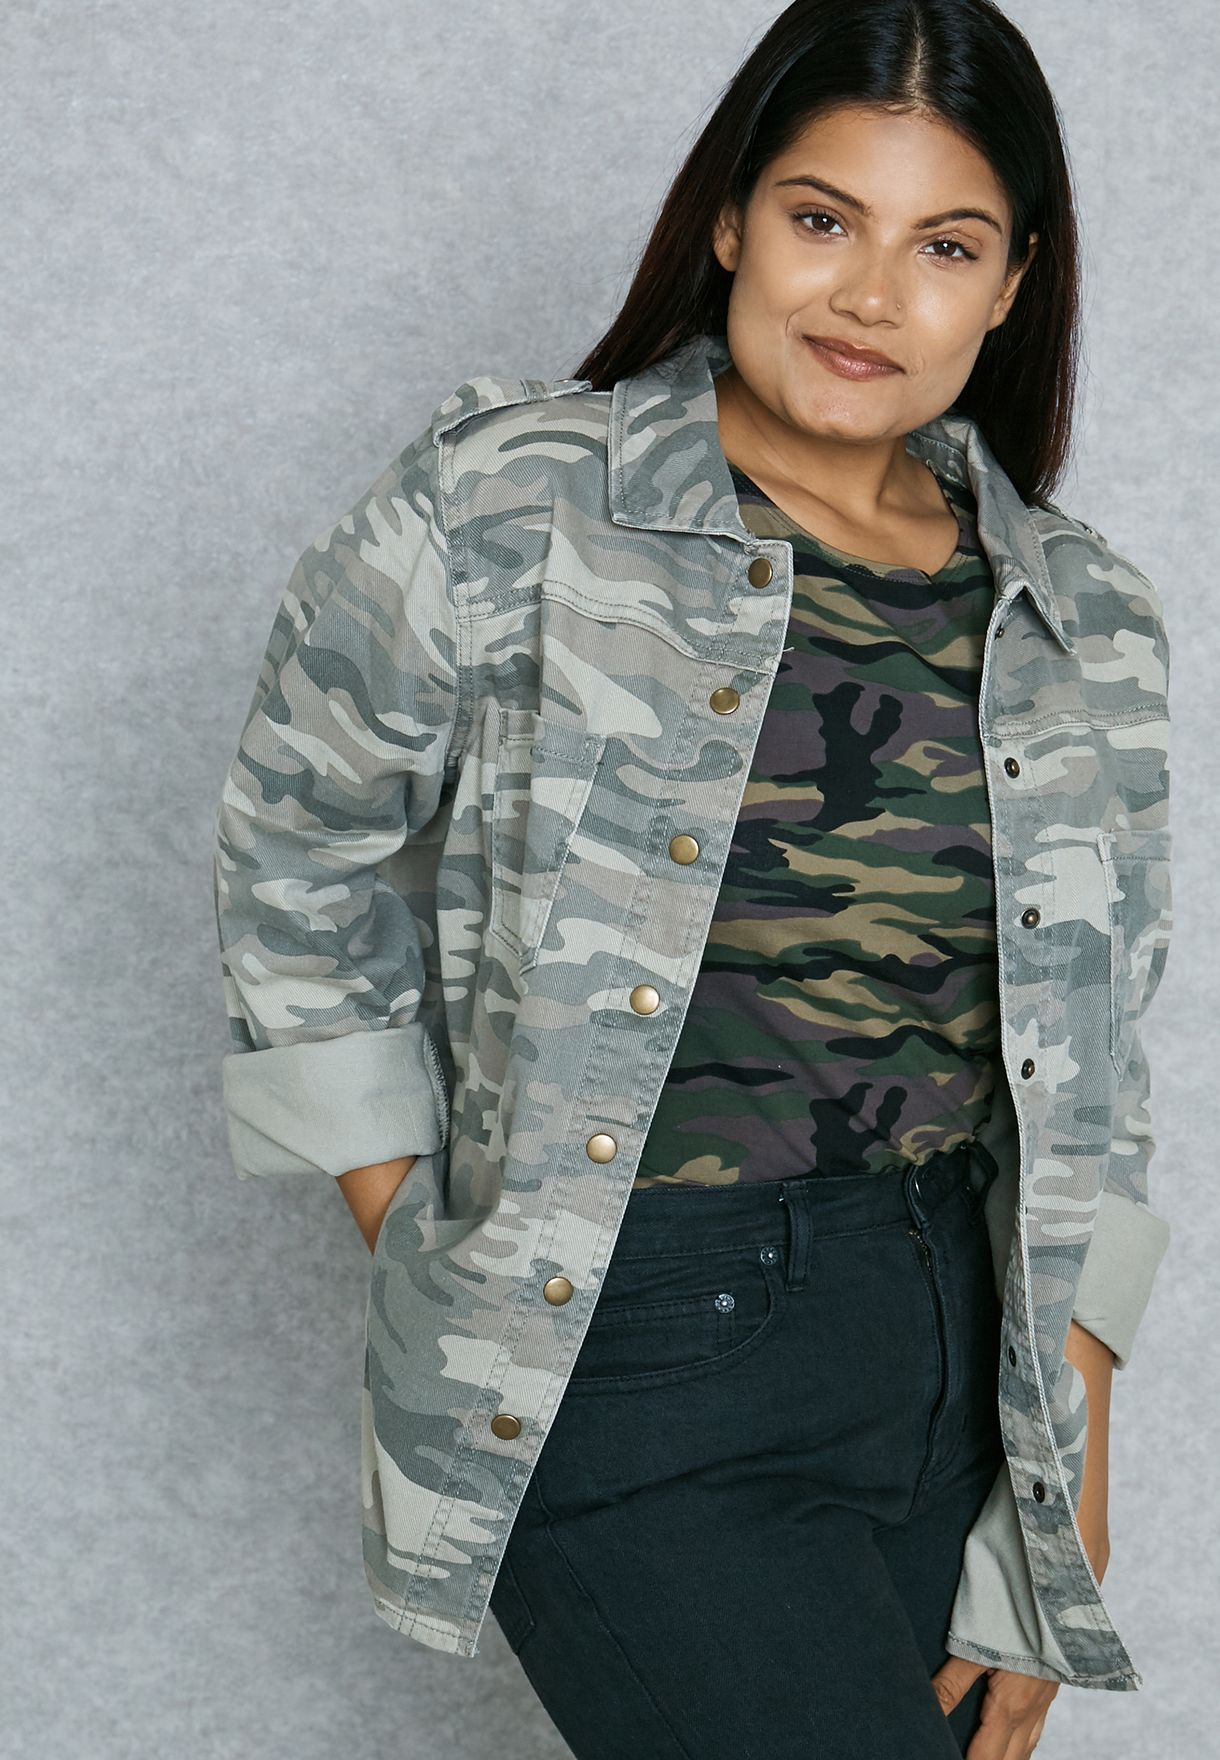 ffc30a63201 Shop Forever 21 Plus prints Camo Jacket 198379 for Women in Kuwait -  FO071AT95TXW